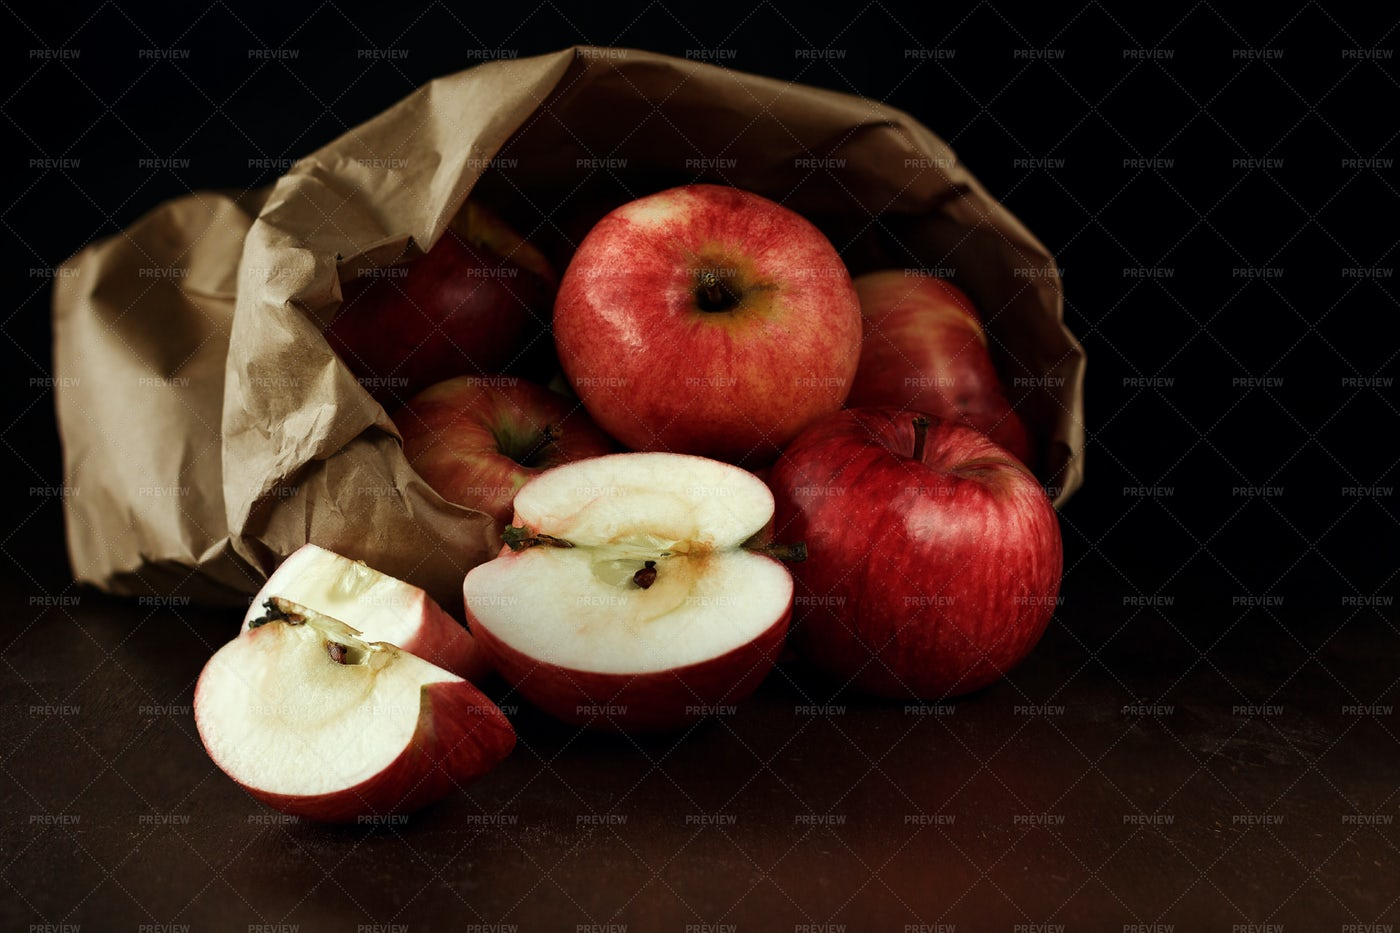 Red Apples In The Bag: Stock Photos